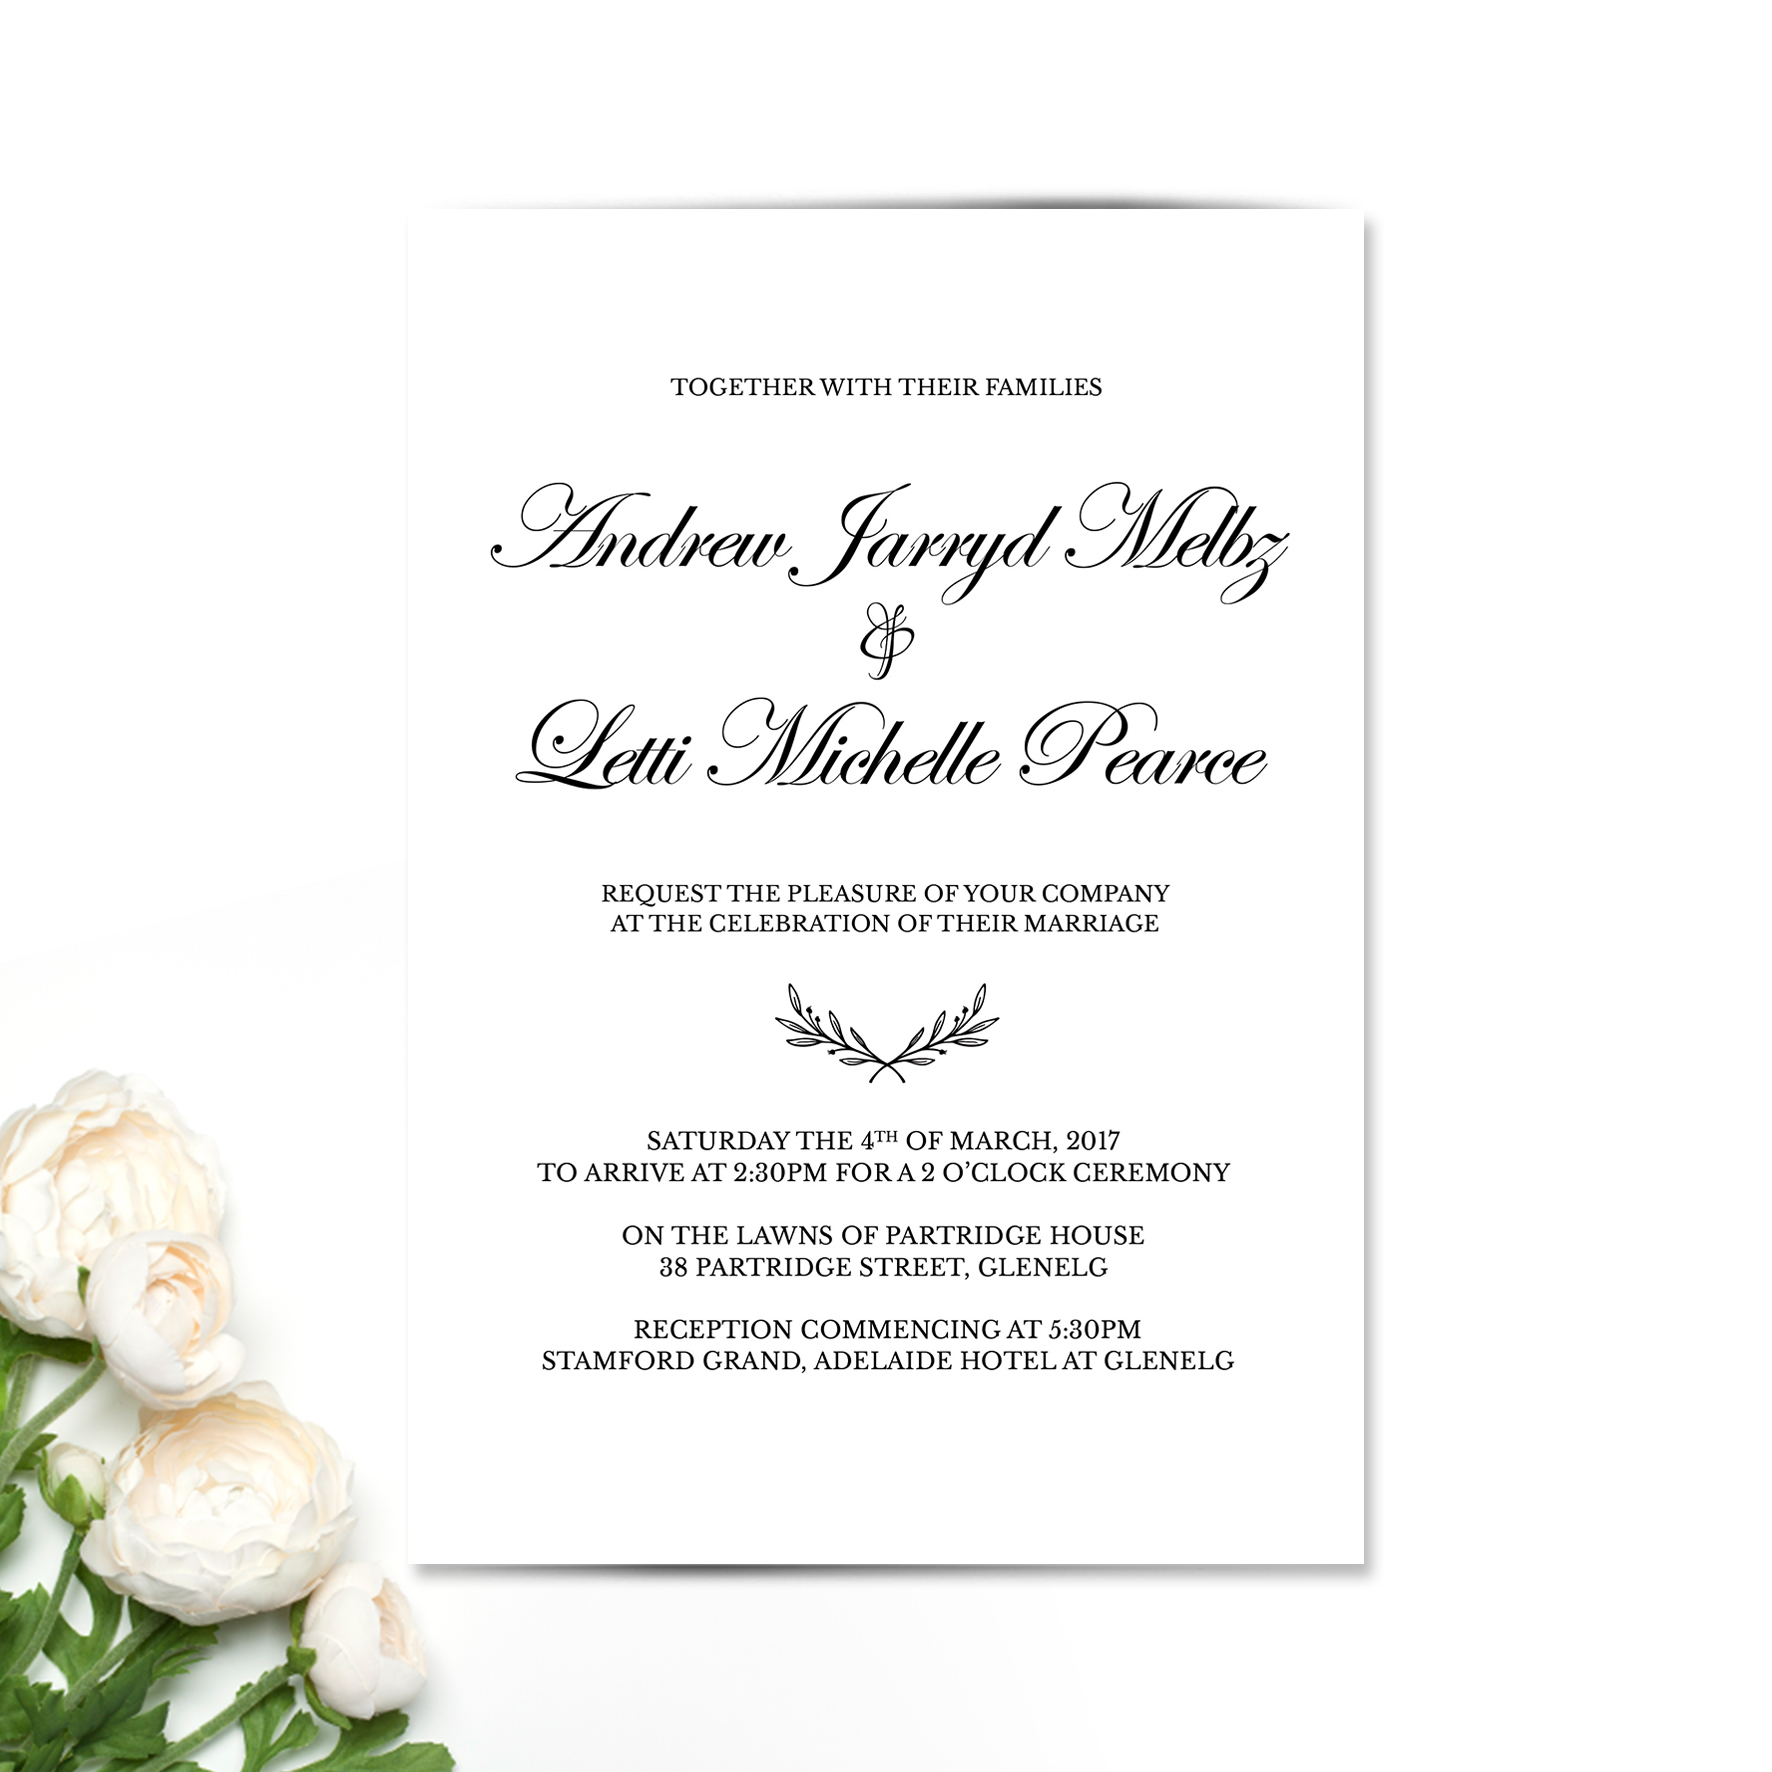 Letti + Andrew Wedding Invitation